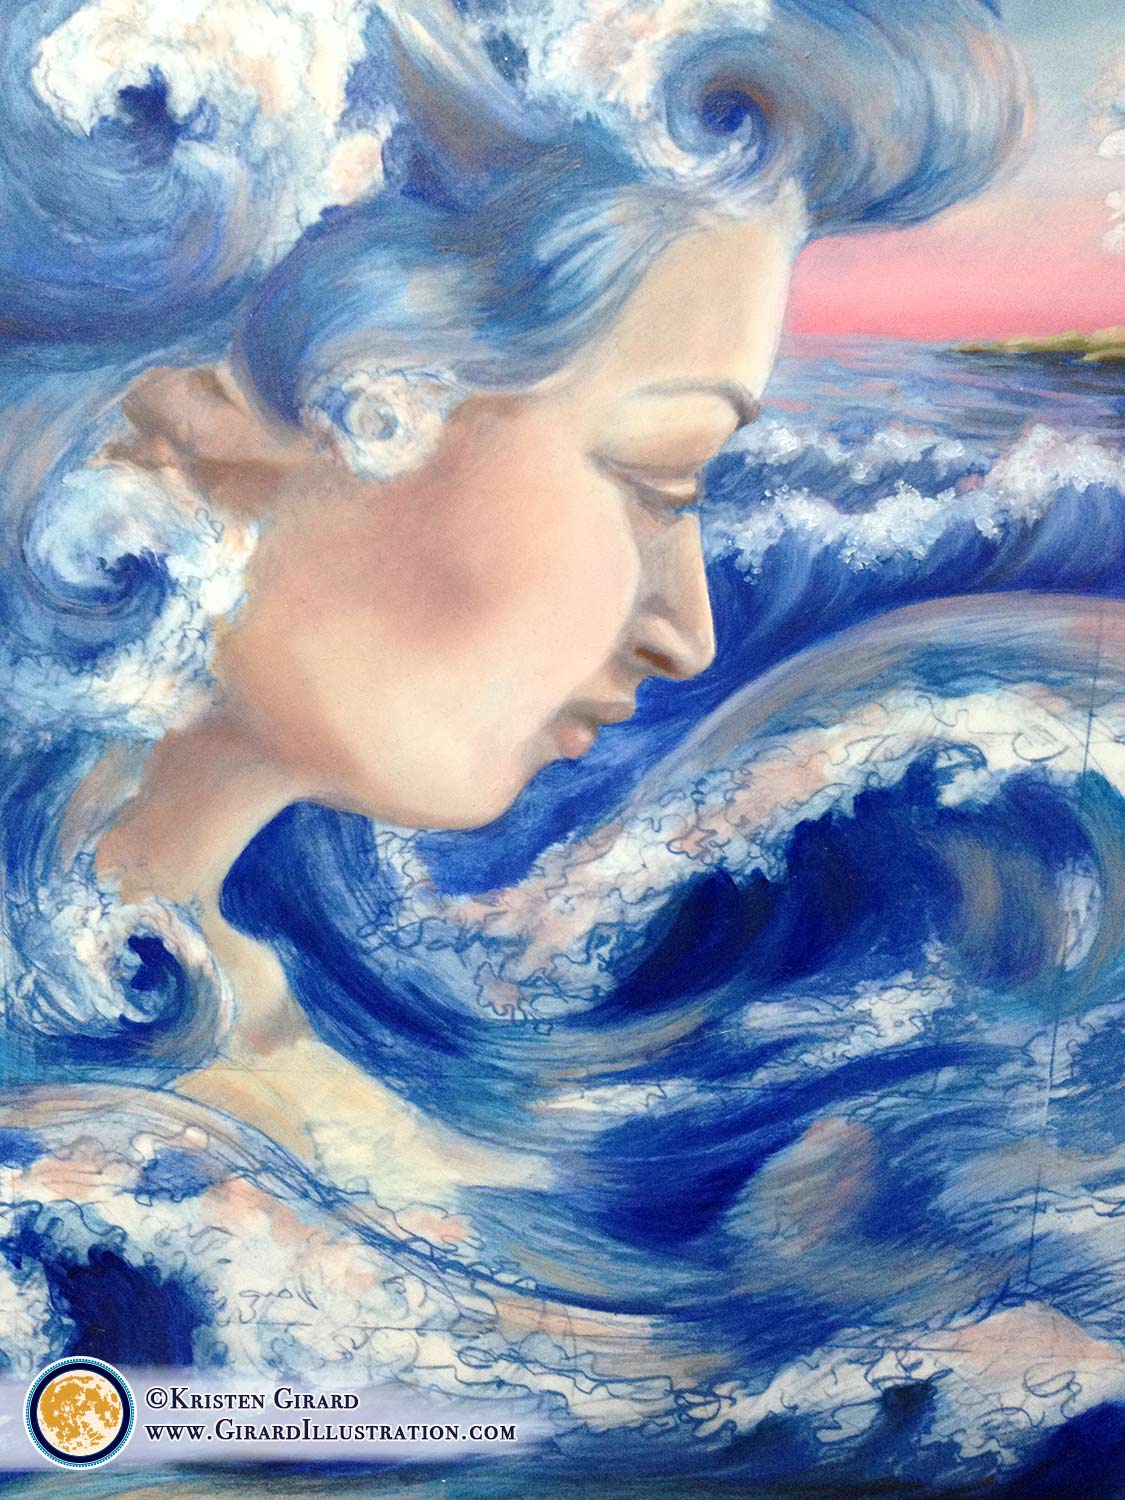 A water goddess born from the creative power of the ocean comes to life.  The sun is just rising as the promise of life is fulfilled. The ocean froths and foams with joy as the new goddess awakens.  Detail of the illustration artwork  Water Magic by © Kristen Girard  in progress.  Click here to see the finished painting.